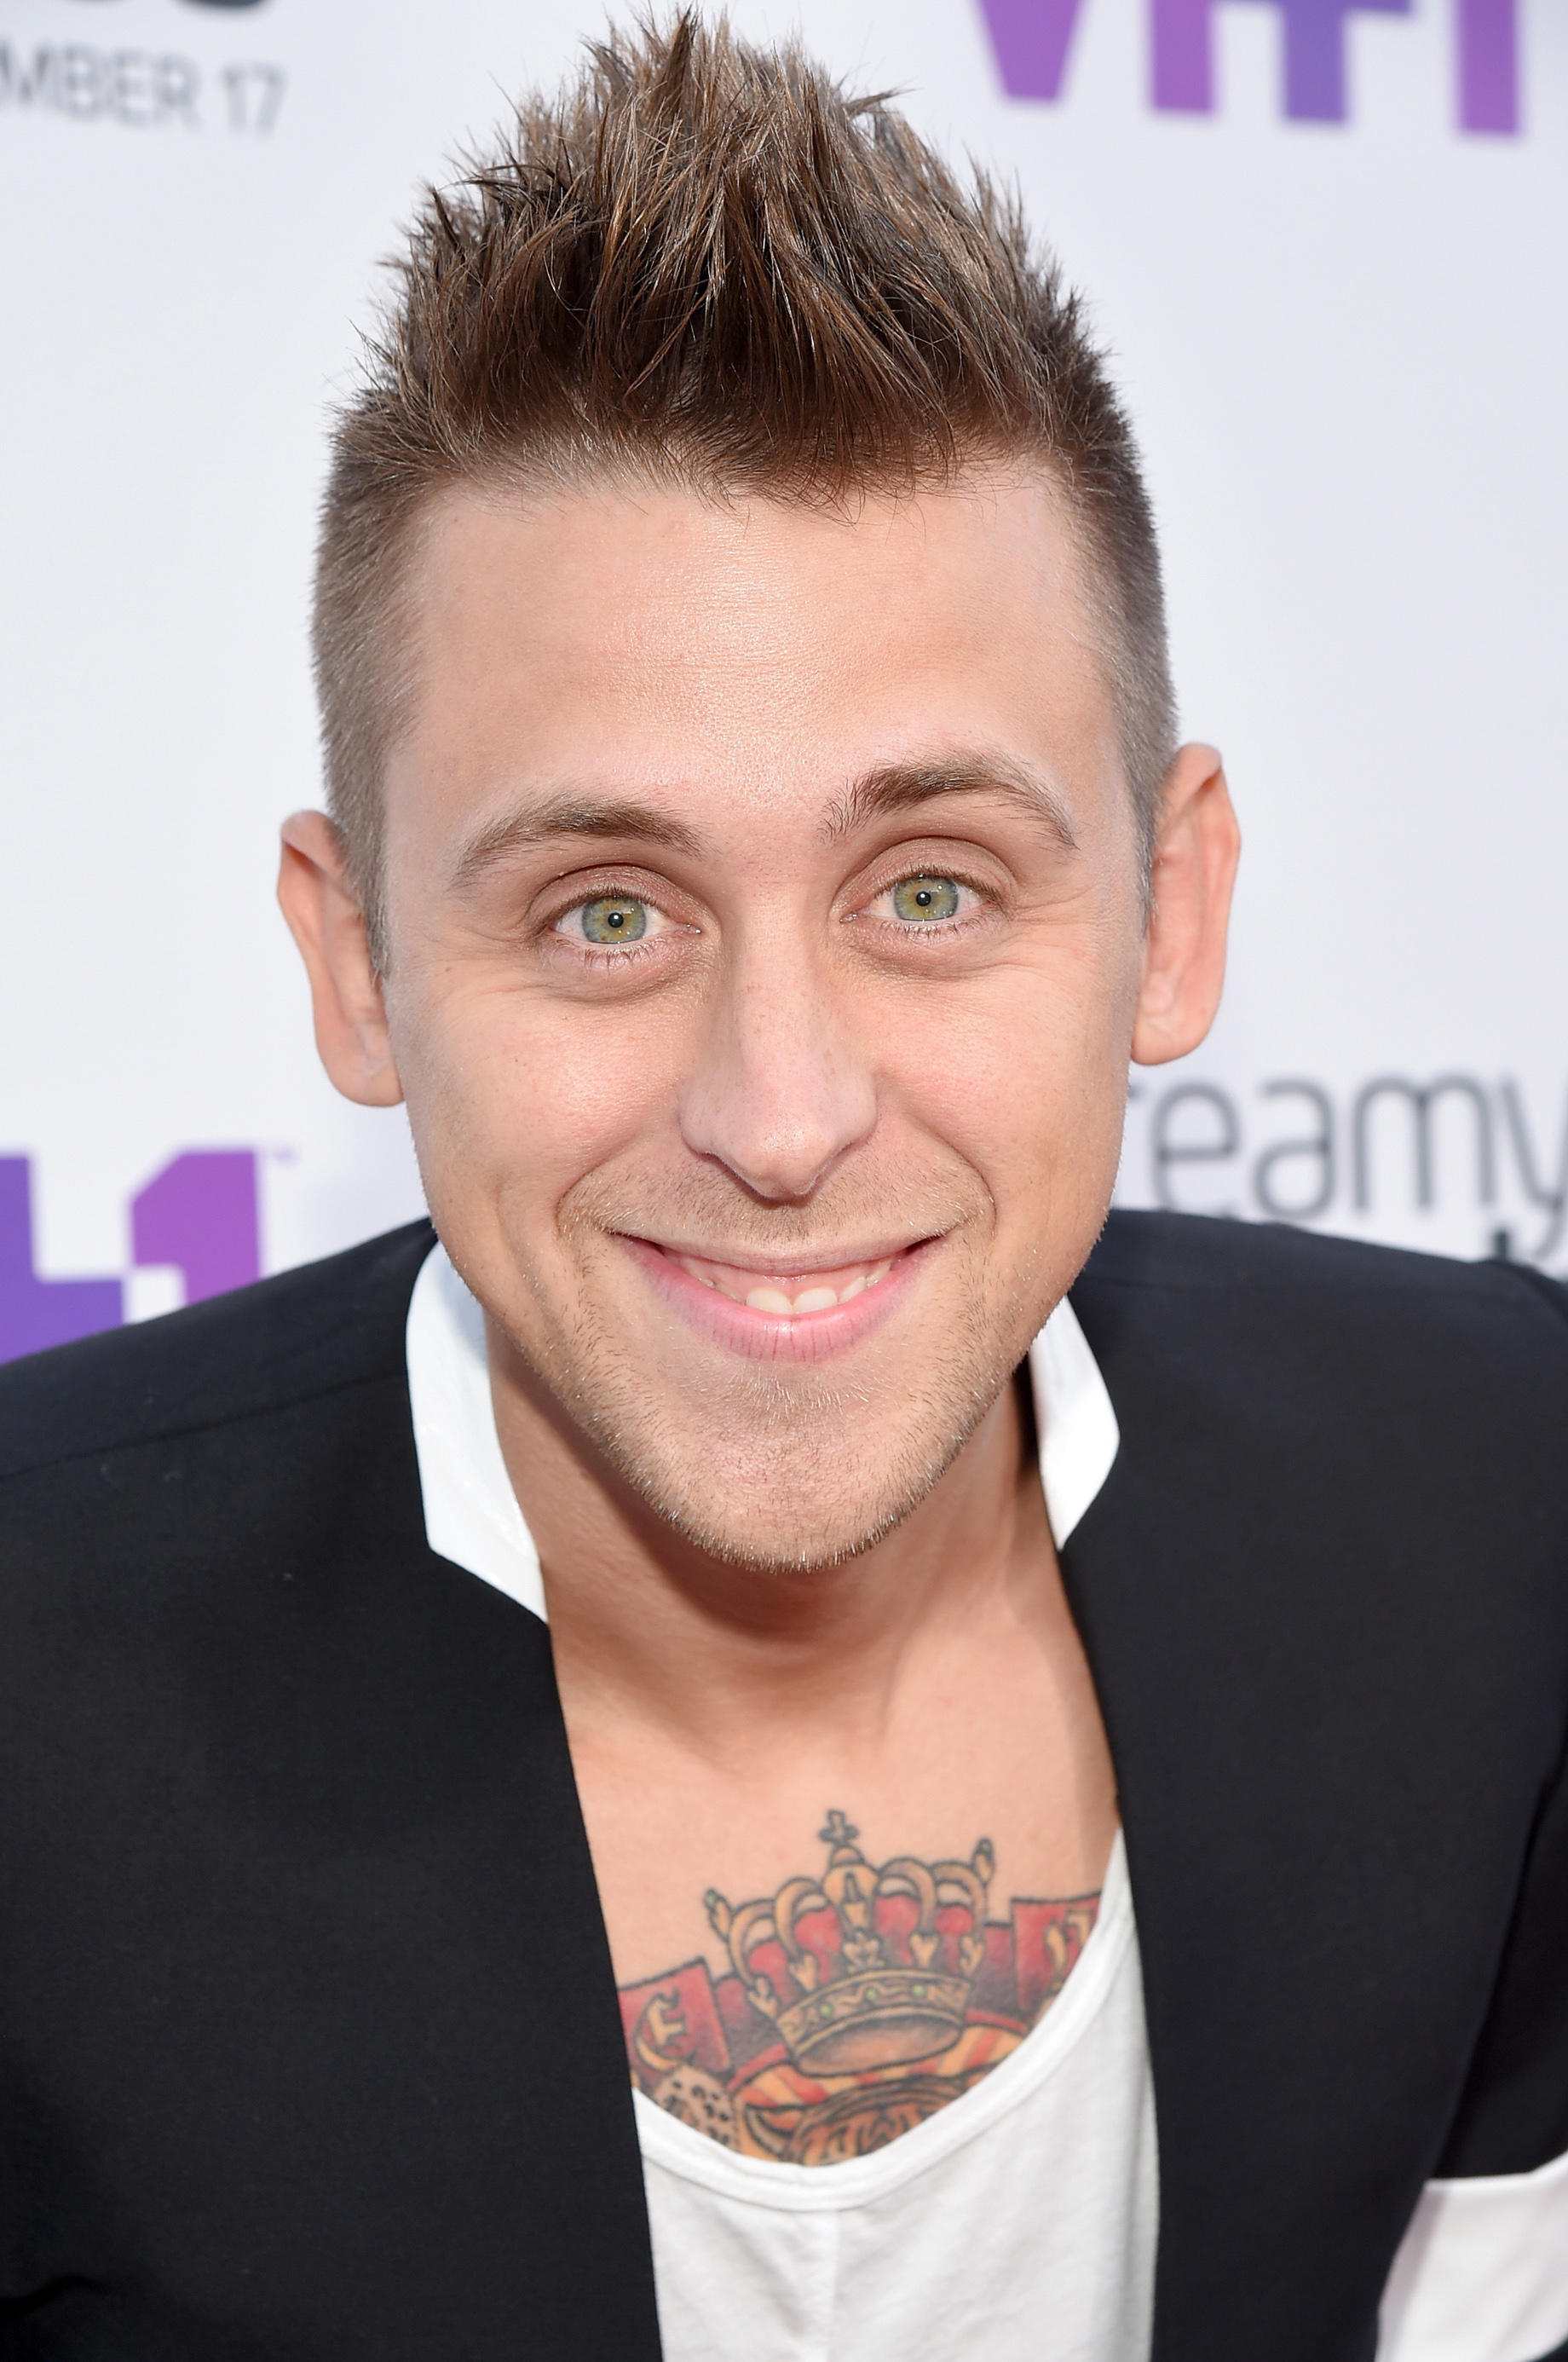 Roman atwood pictures and photos fandango for The atwood